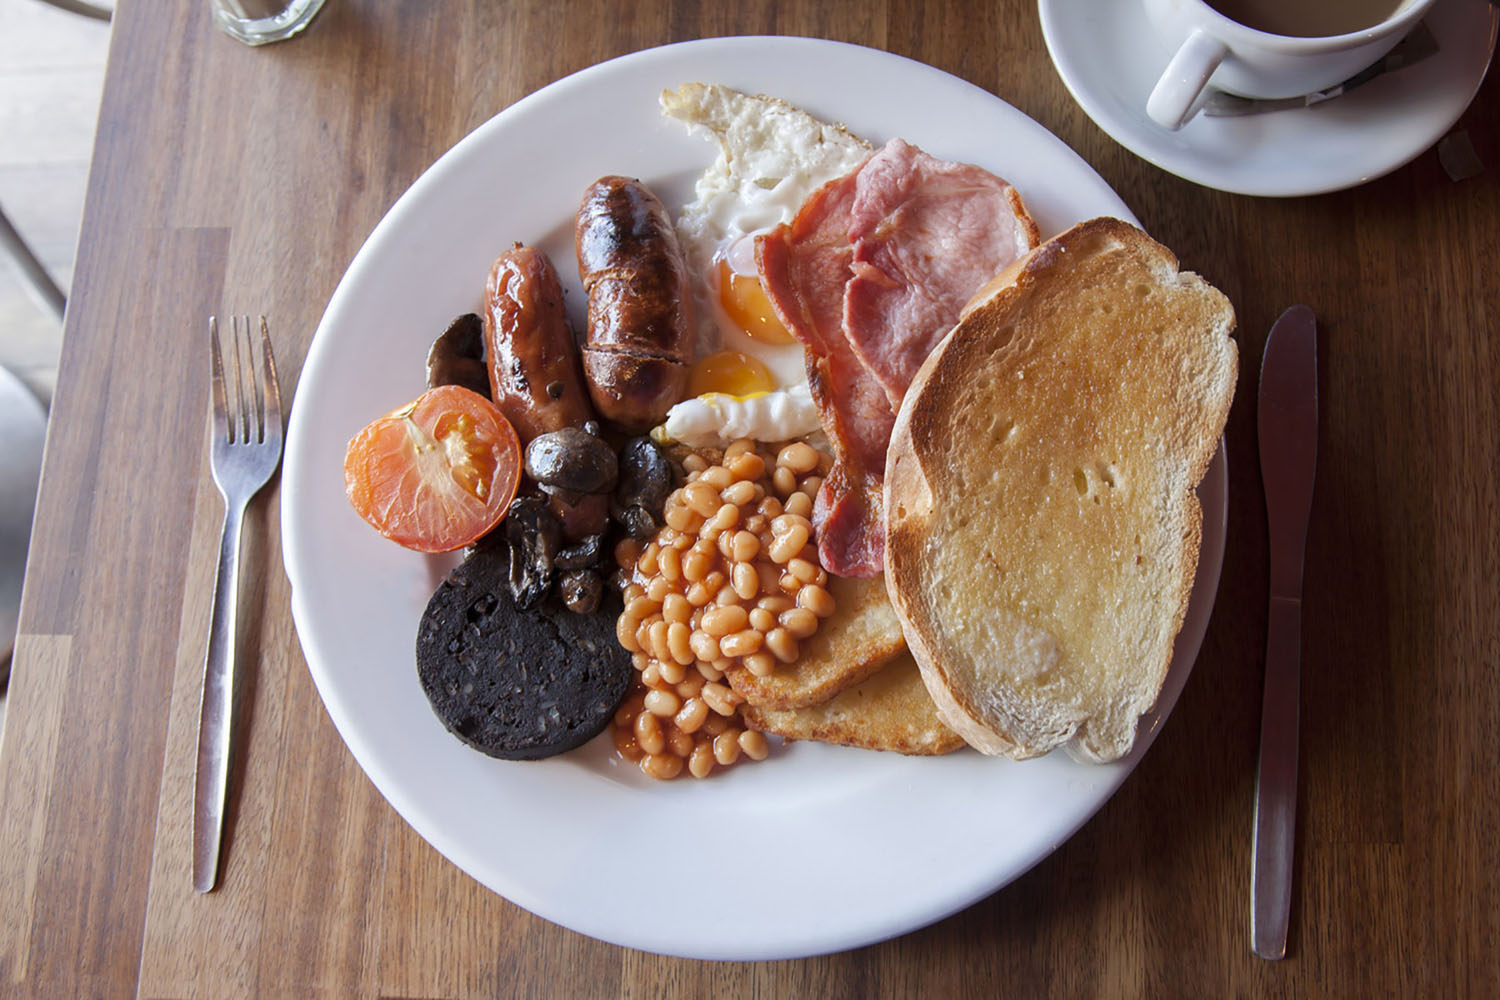 An example of a full Irish breakfast.